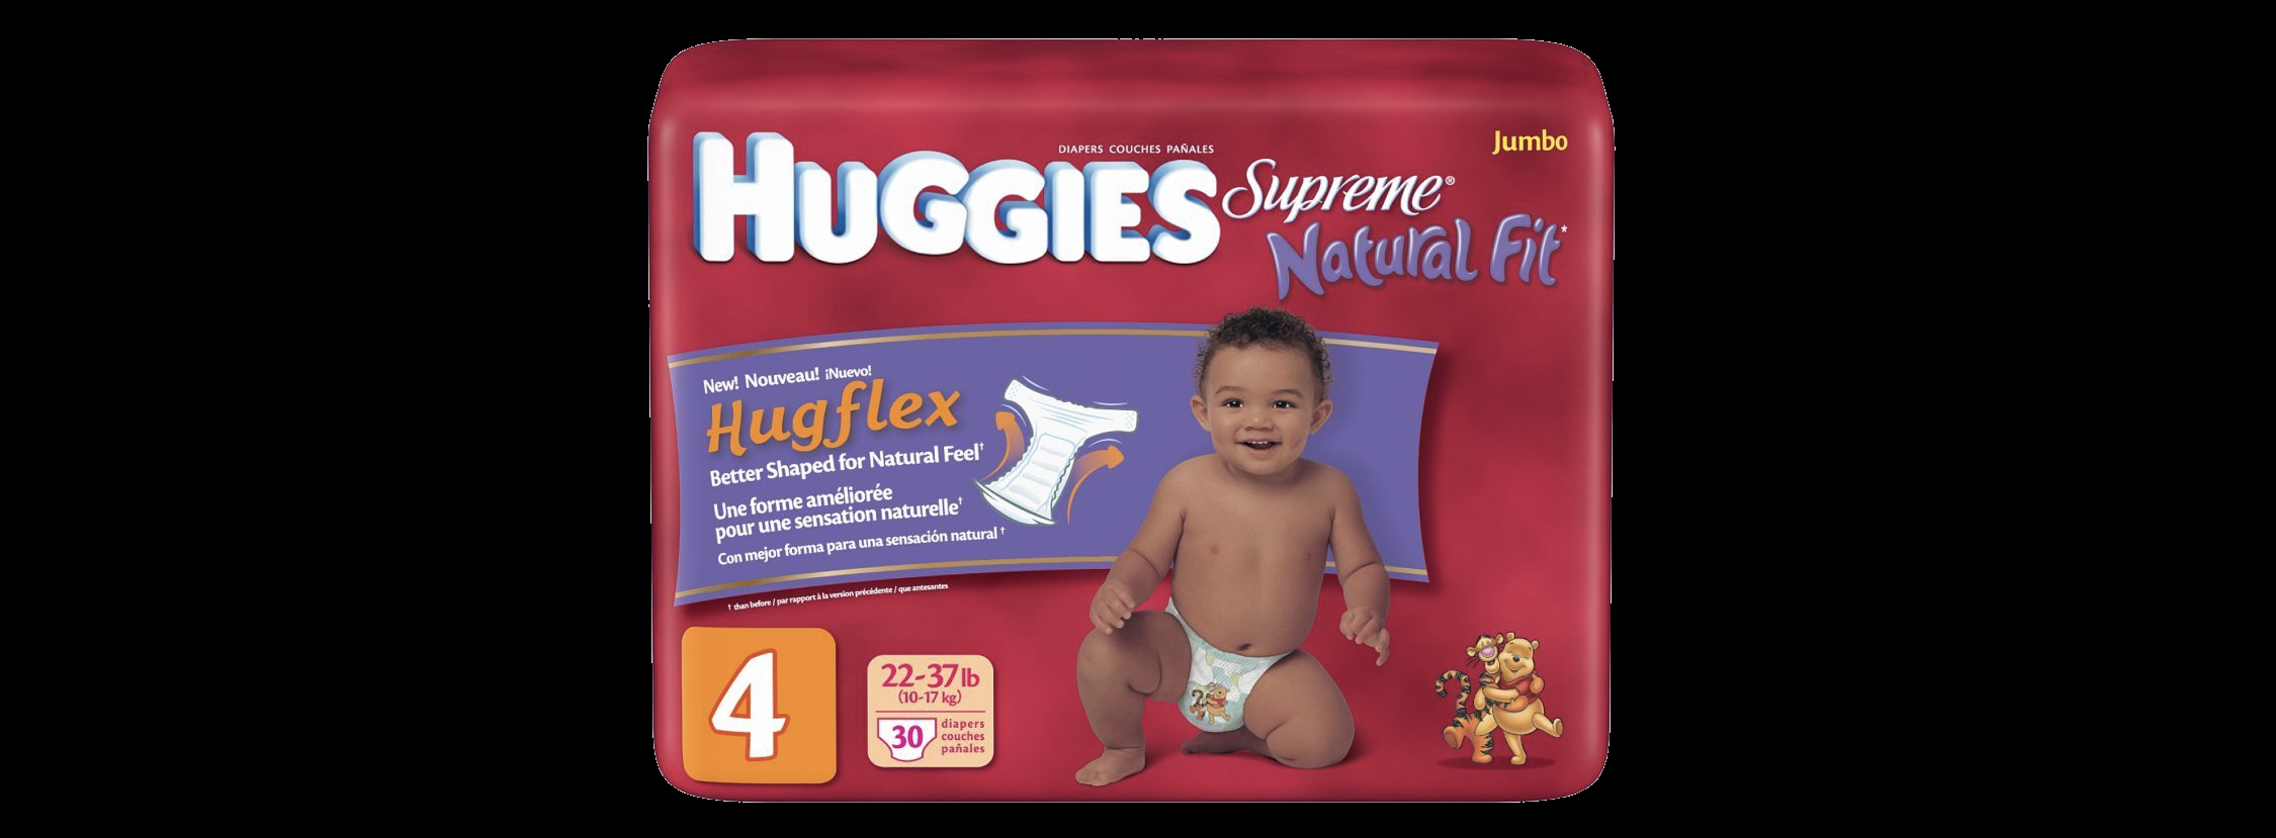 Community organizers user diaper banks to help people and build contact lists